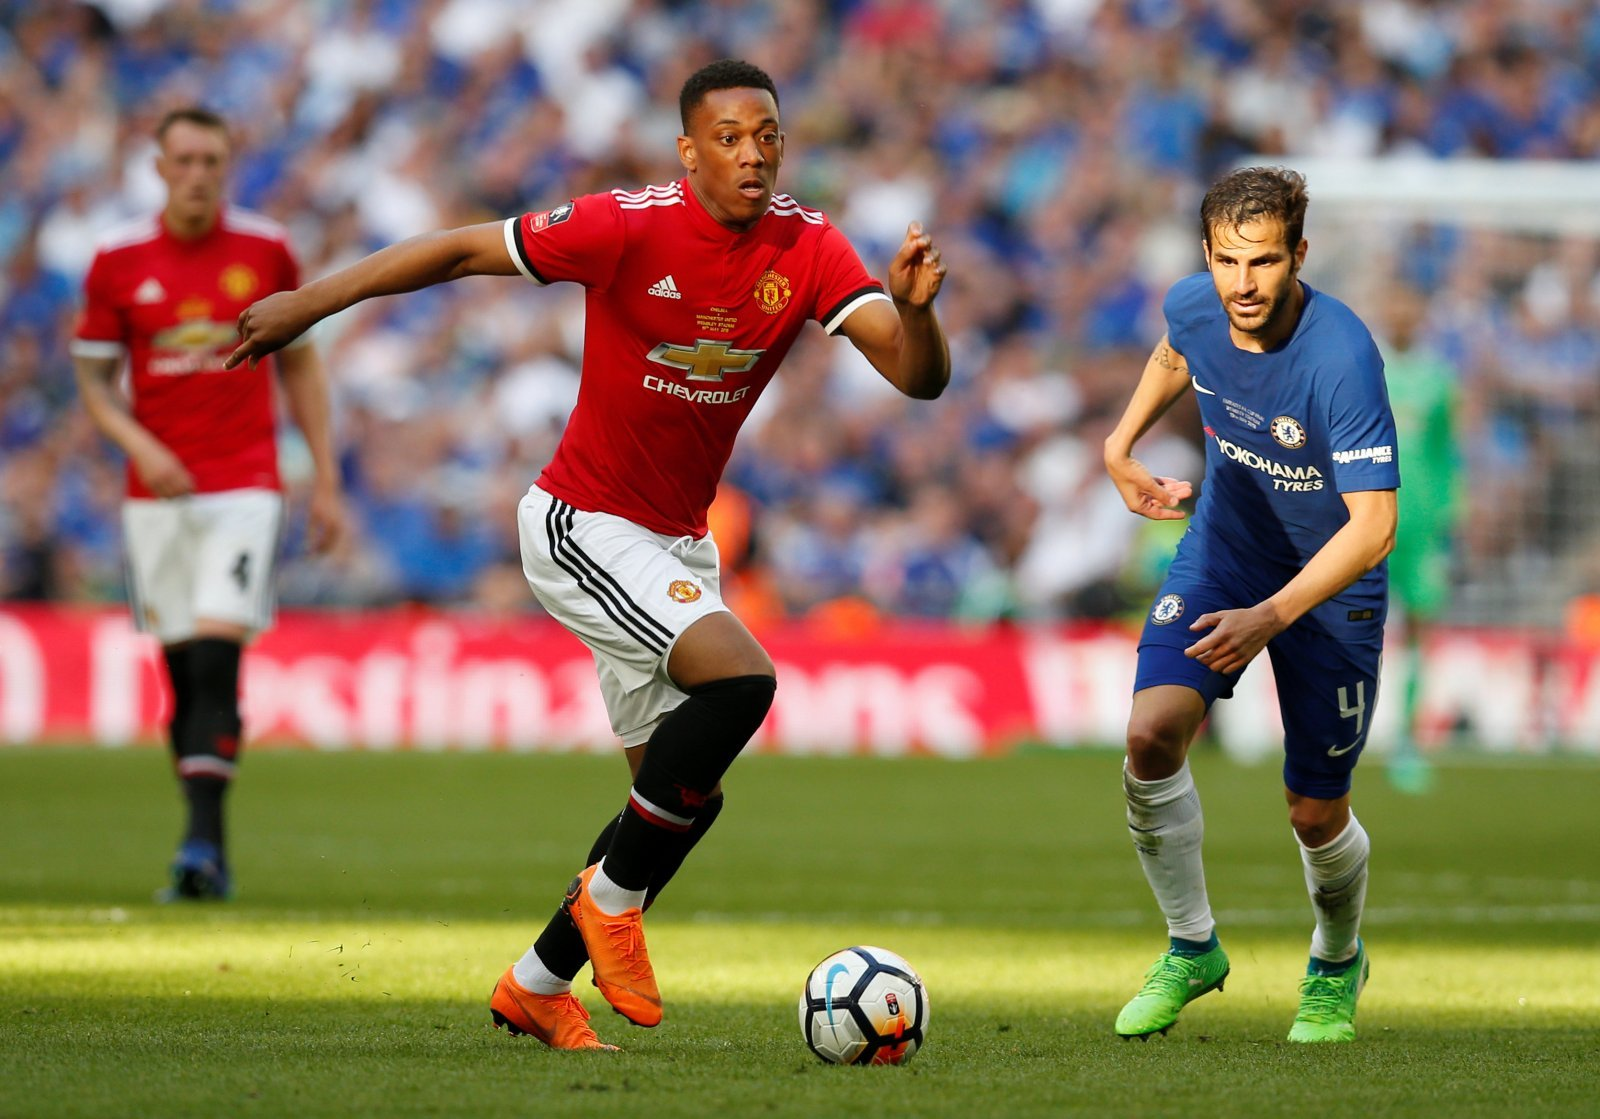 Tottenham ready to pounce to sign Anthony Martial